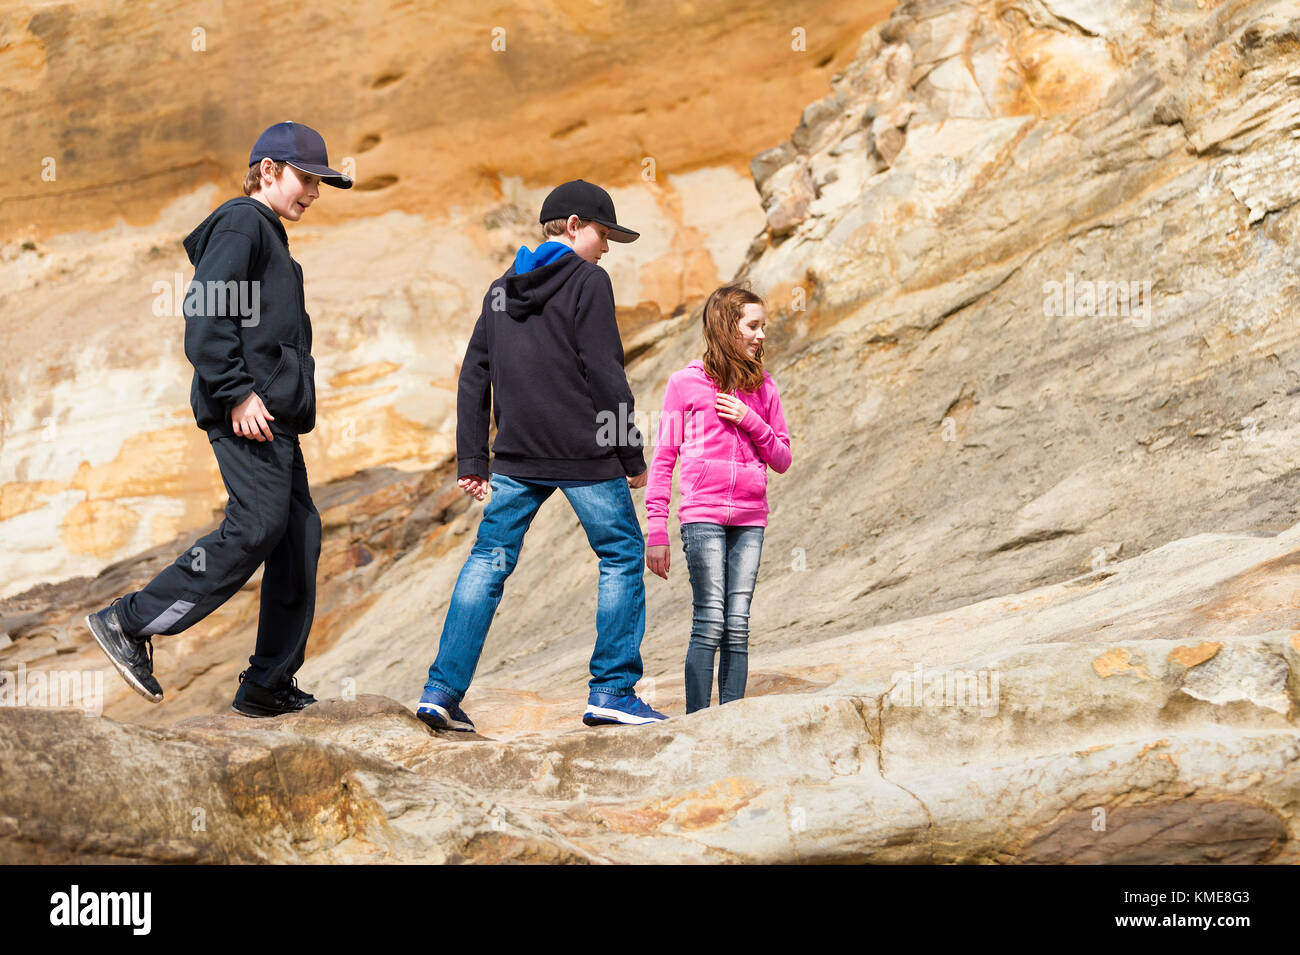 Two boys and a girl explore the sandstone geological feature at Cape Kiwanda in Pacific City on the Oregon Coast - Stock Image